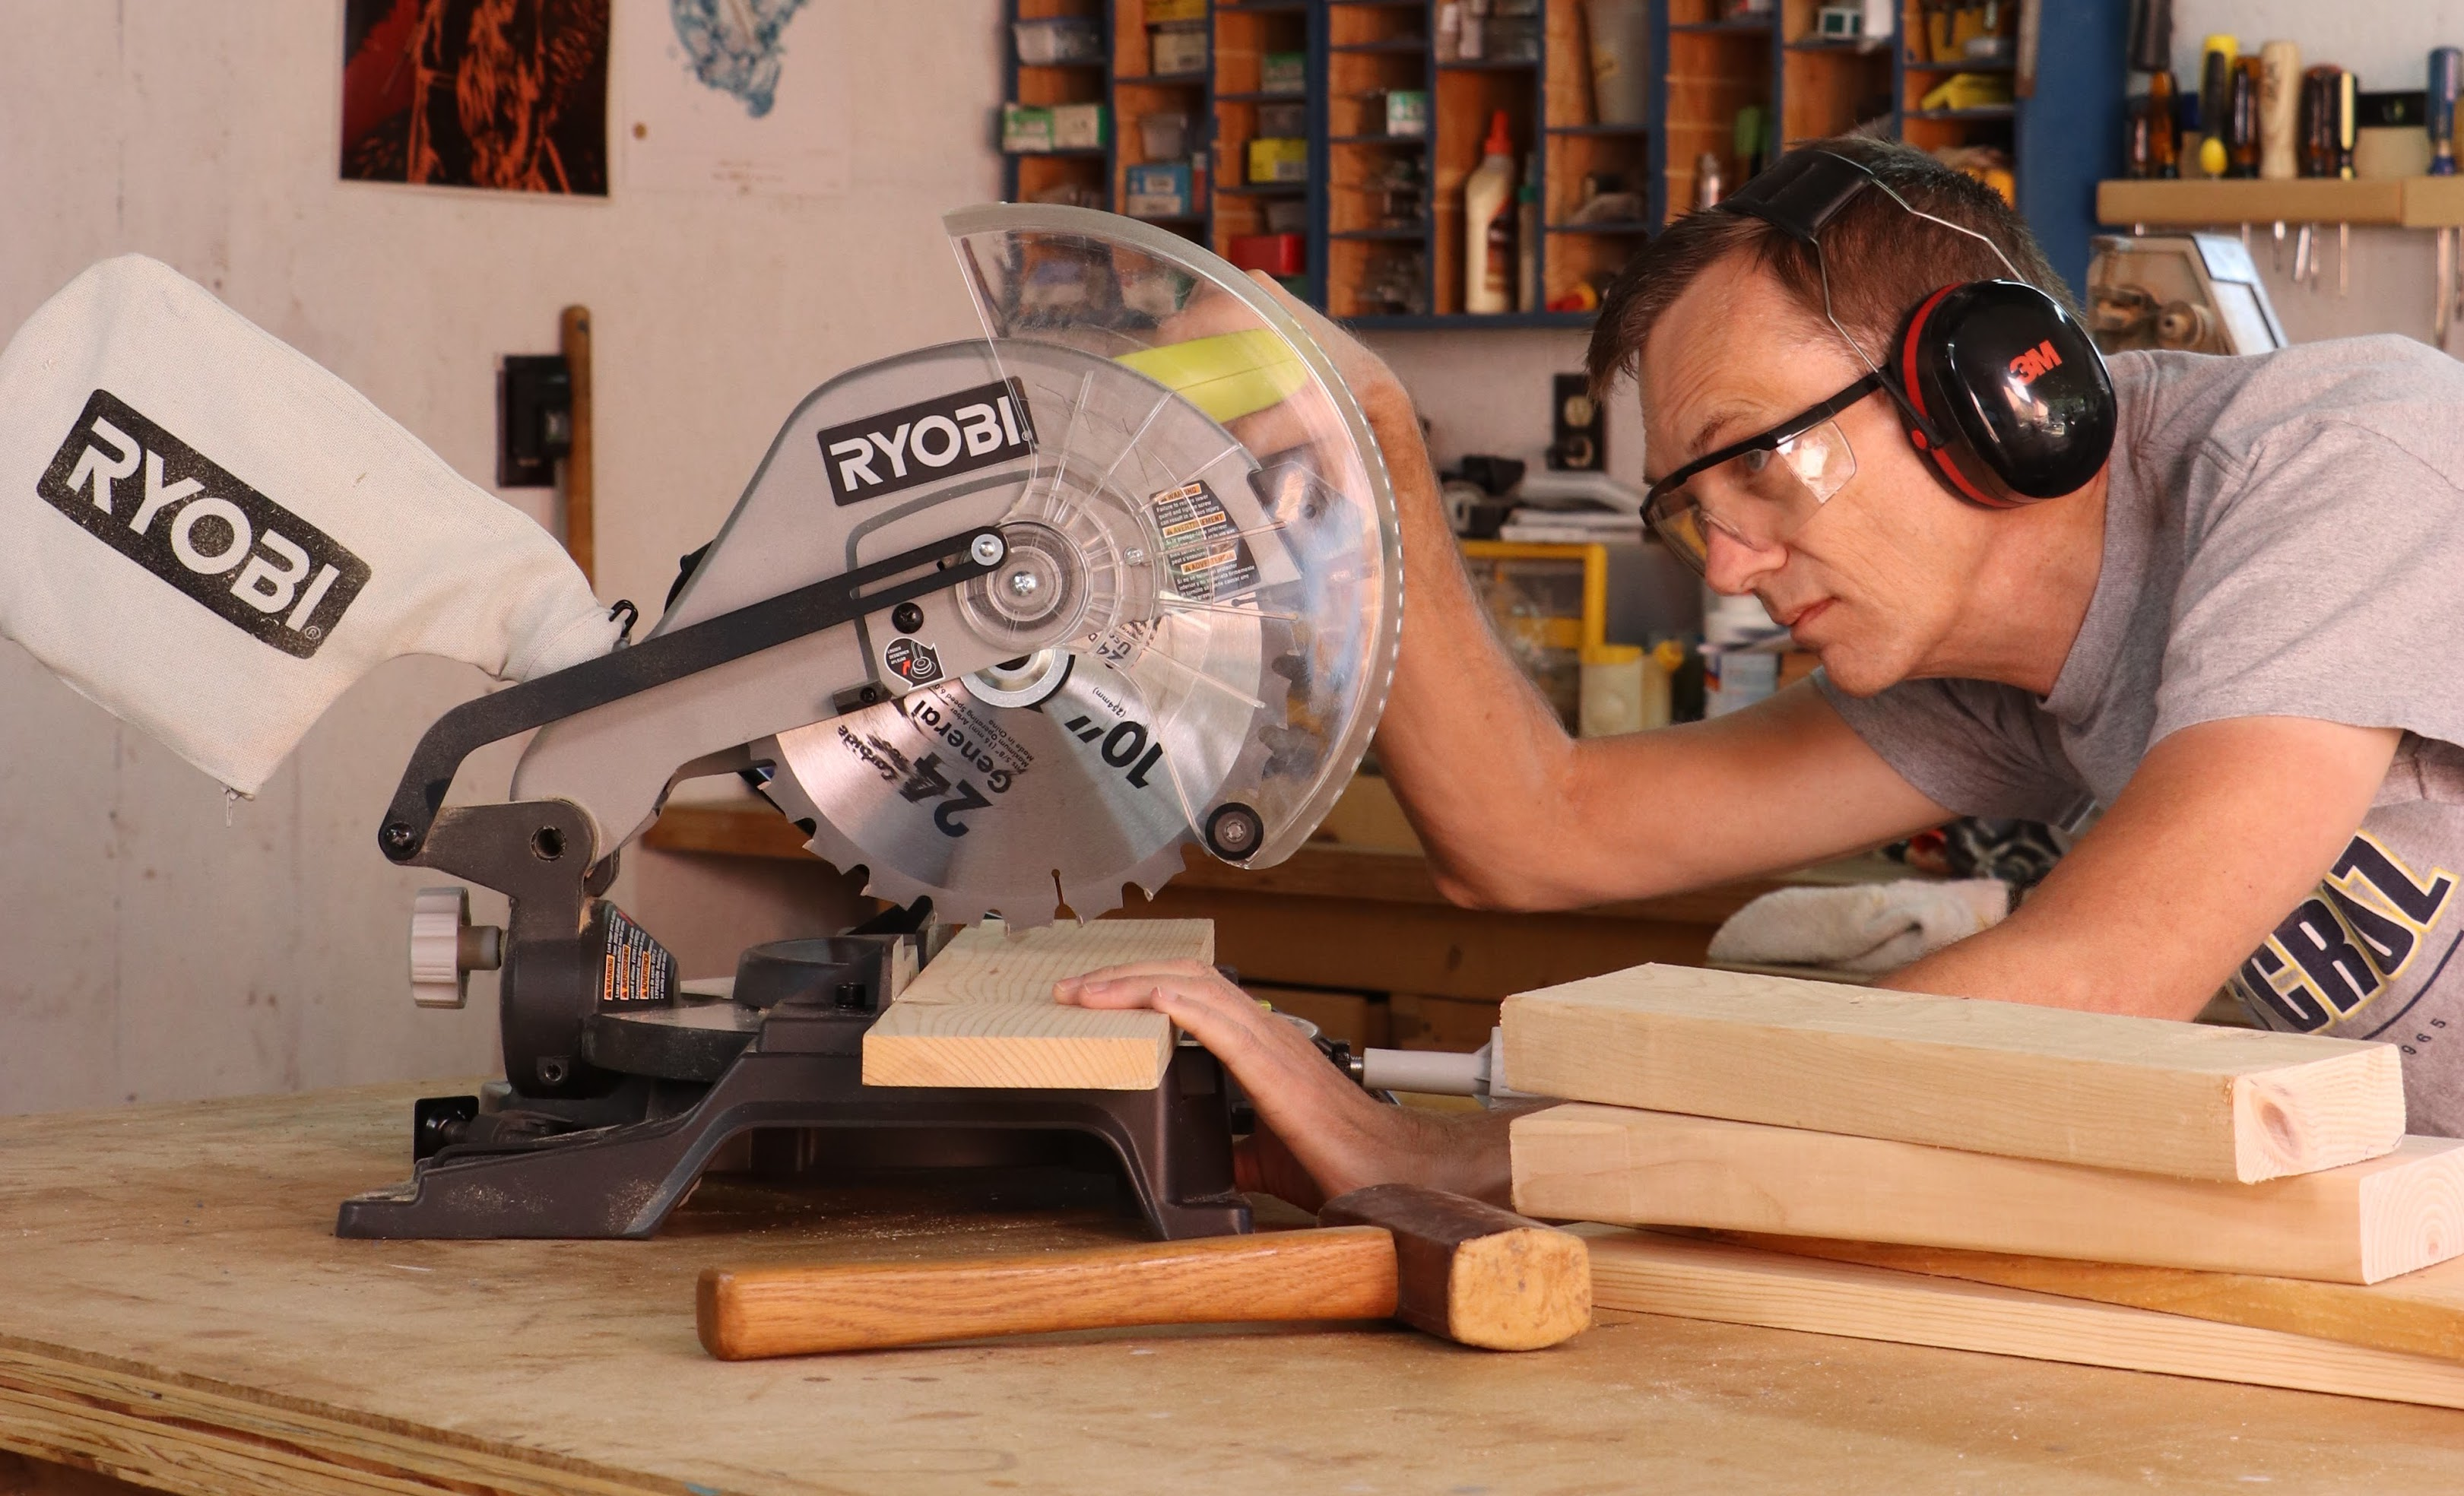 List of Must-Have Woodworking Tools (For Less Than $1000)